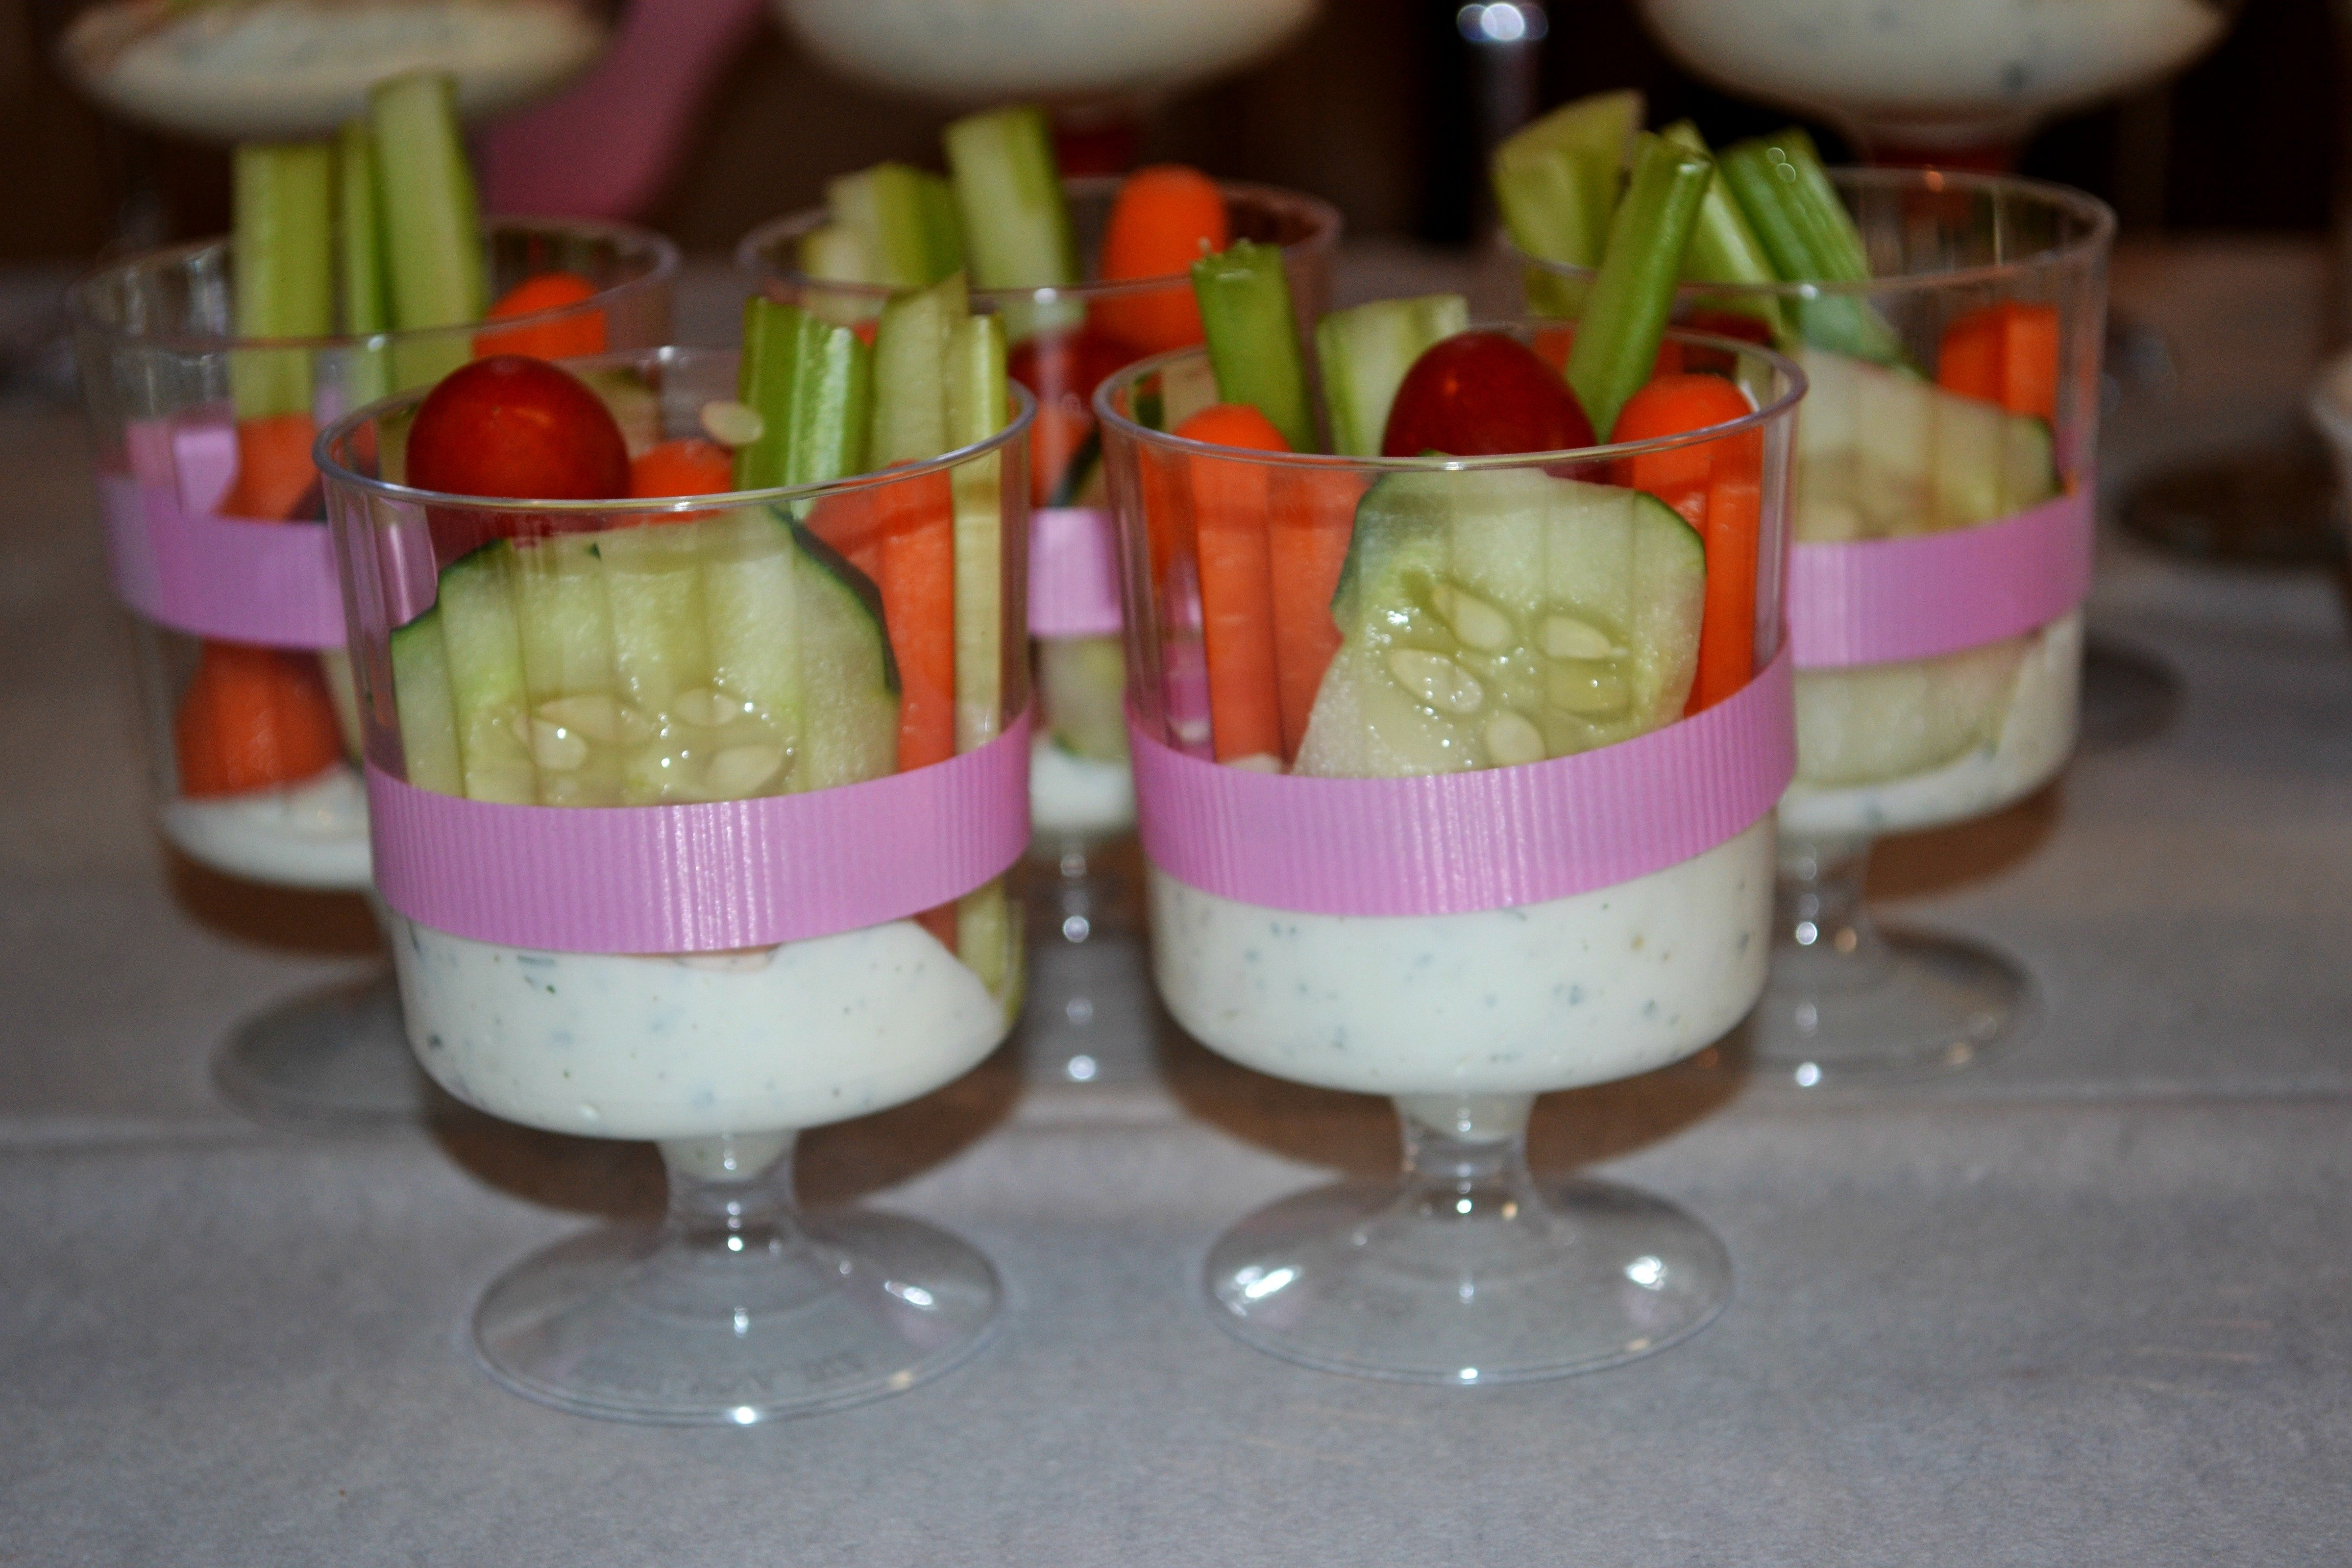 10 Unique Baby Shower Food Ideas For A Girl baby shower food ideas for a girl omega center ideas for baby 1 2020